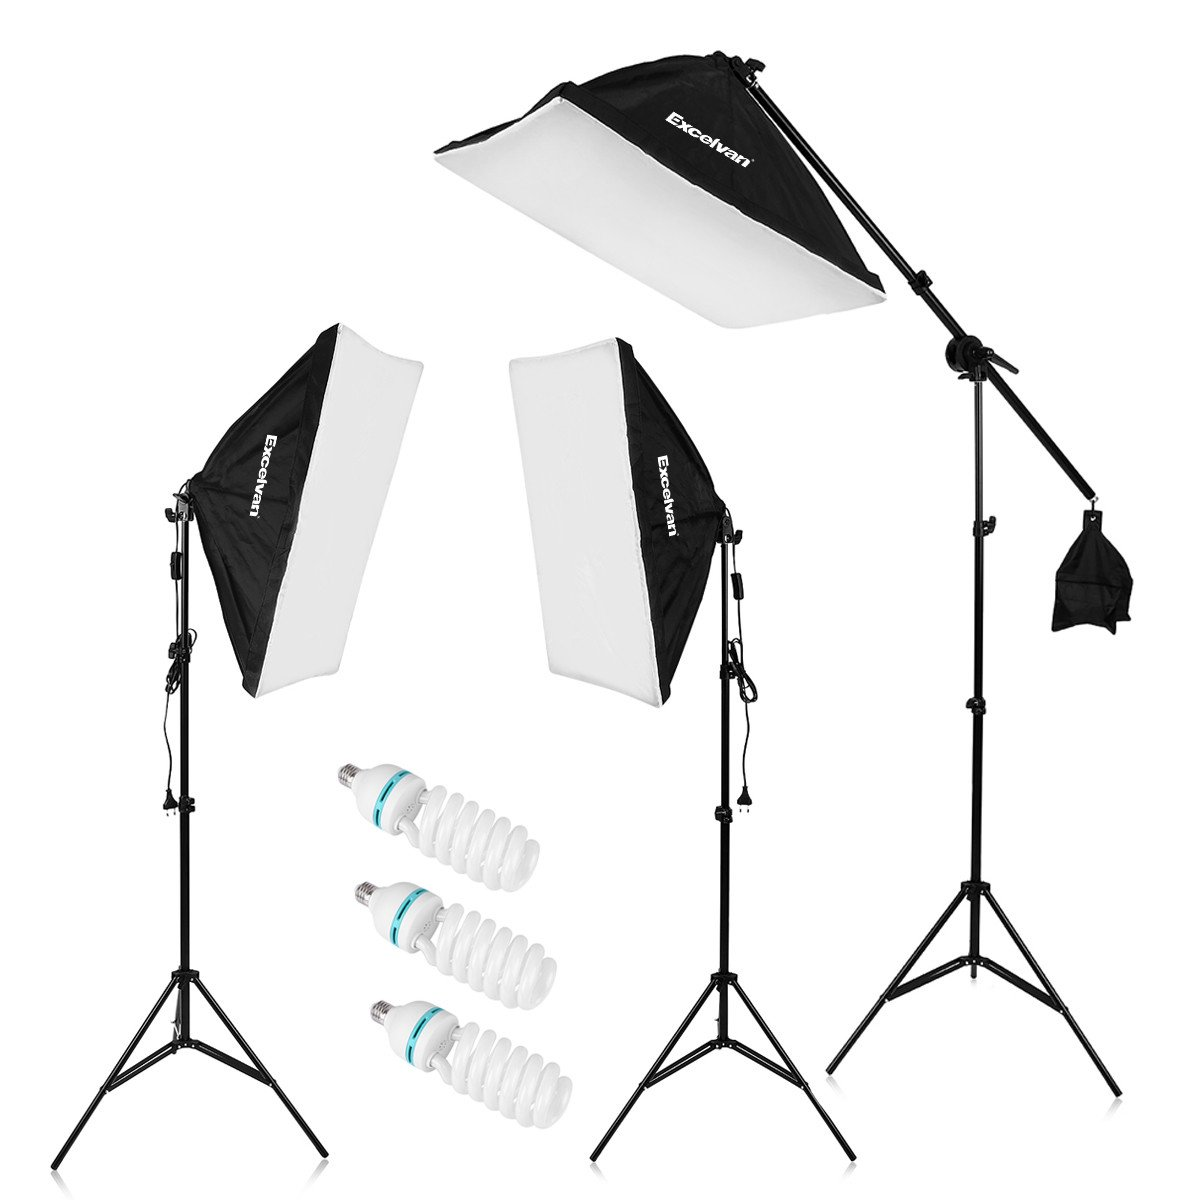 "Excelvan 2000W Photography Studio LED Lighting Kit 20x25"" Auto Pop-up Soft Box with 80"" Light Stand and 135W LED Lamp, SHOX-012"